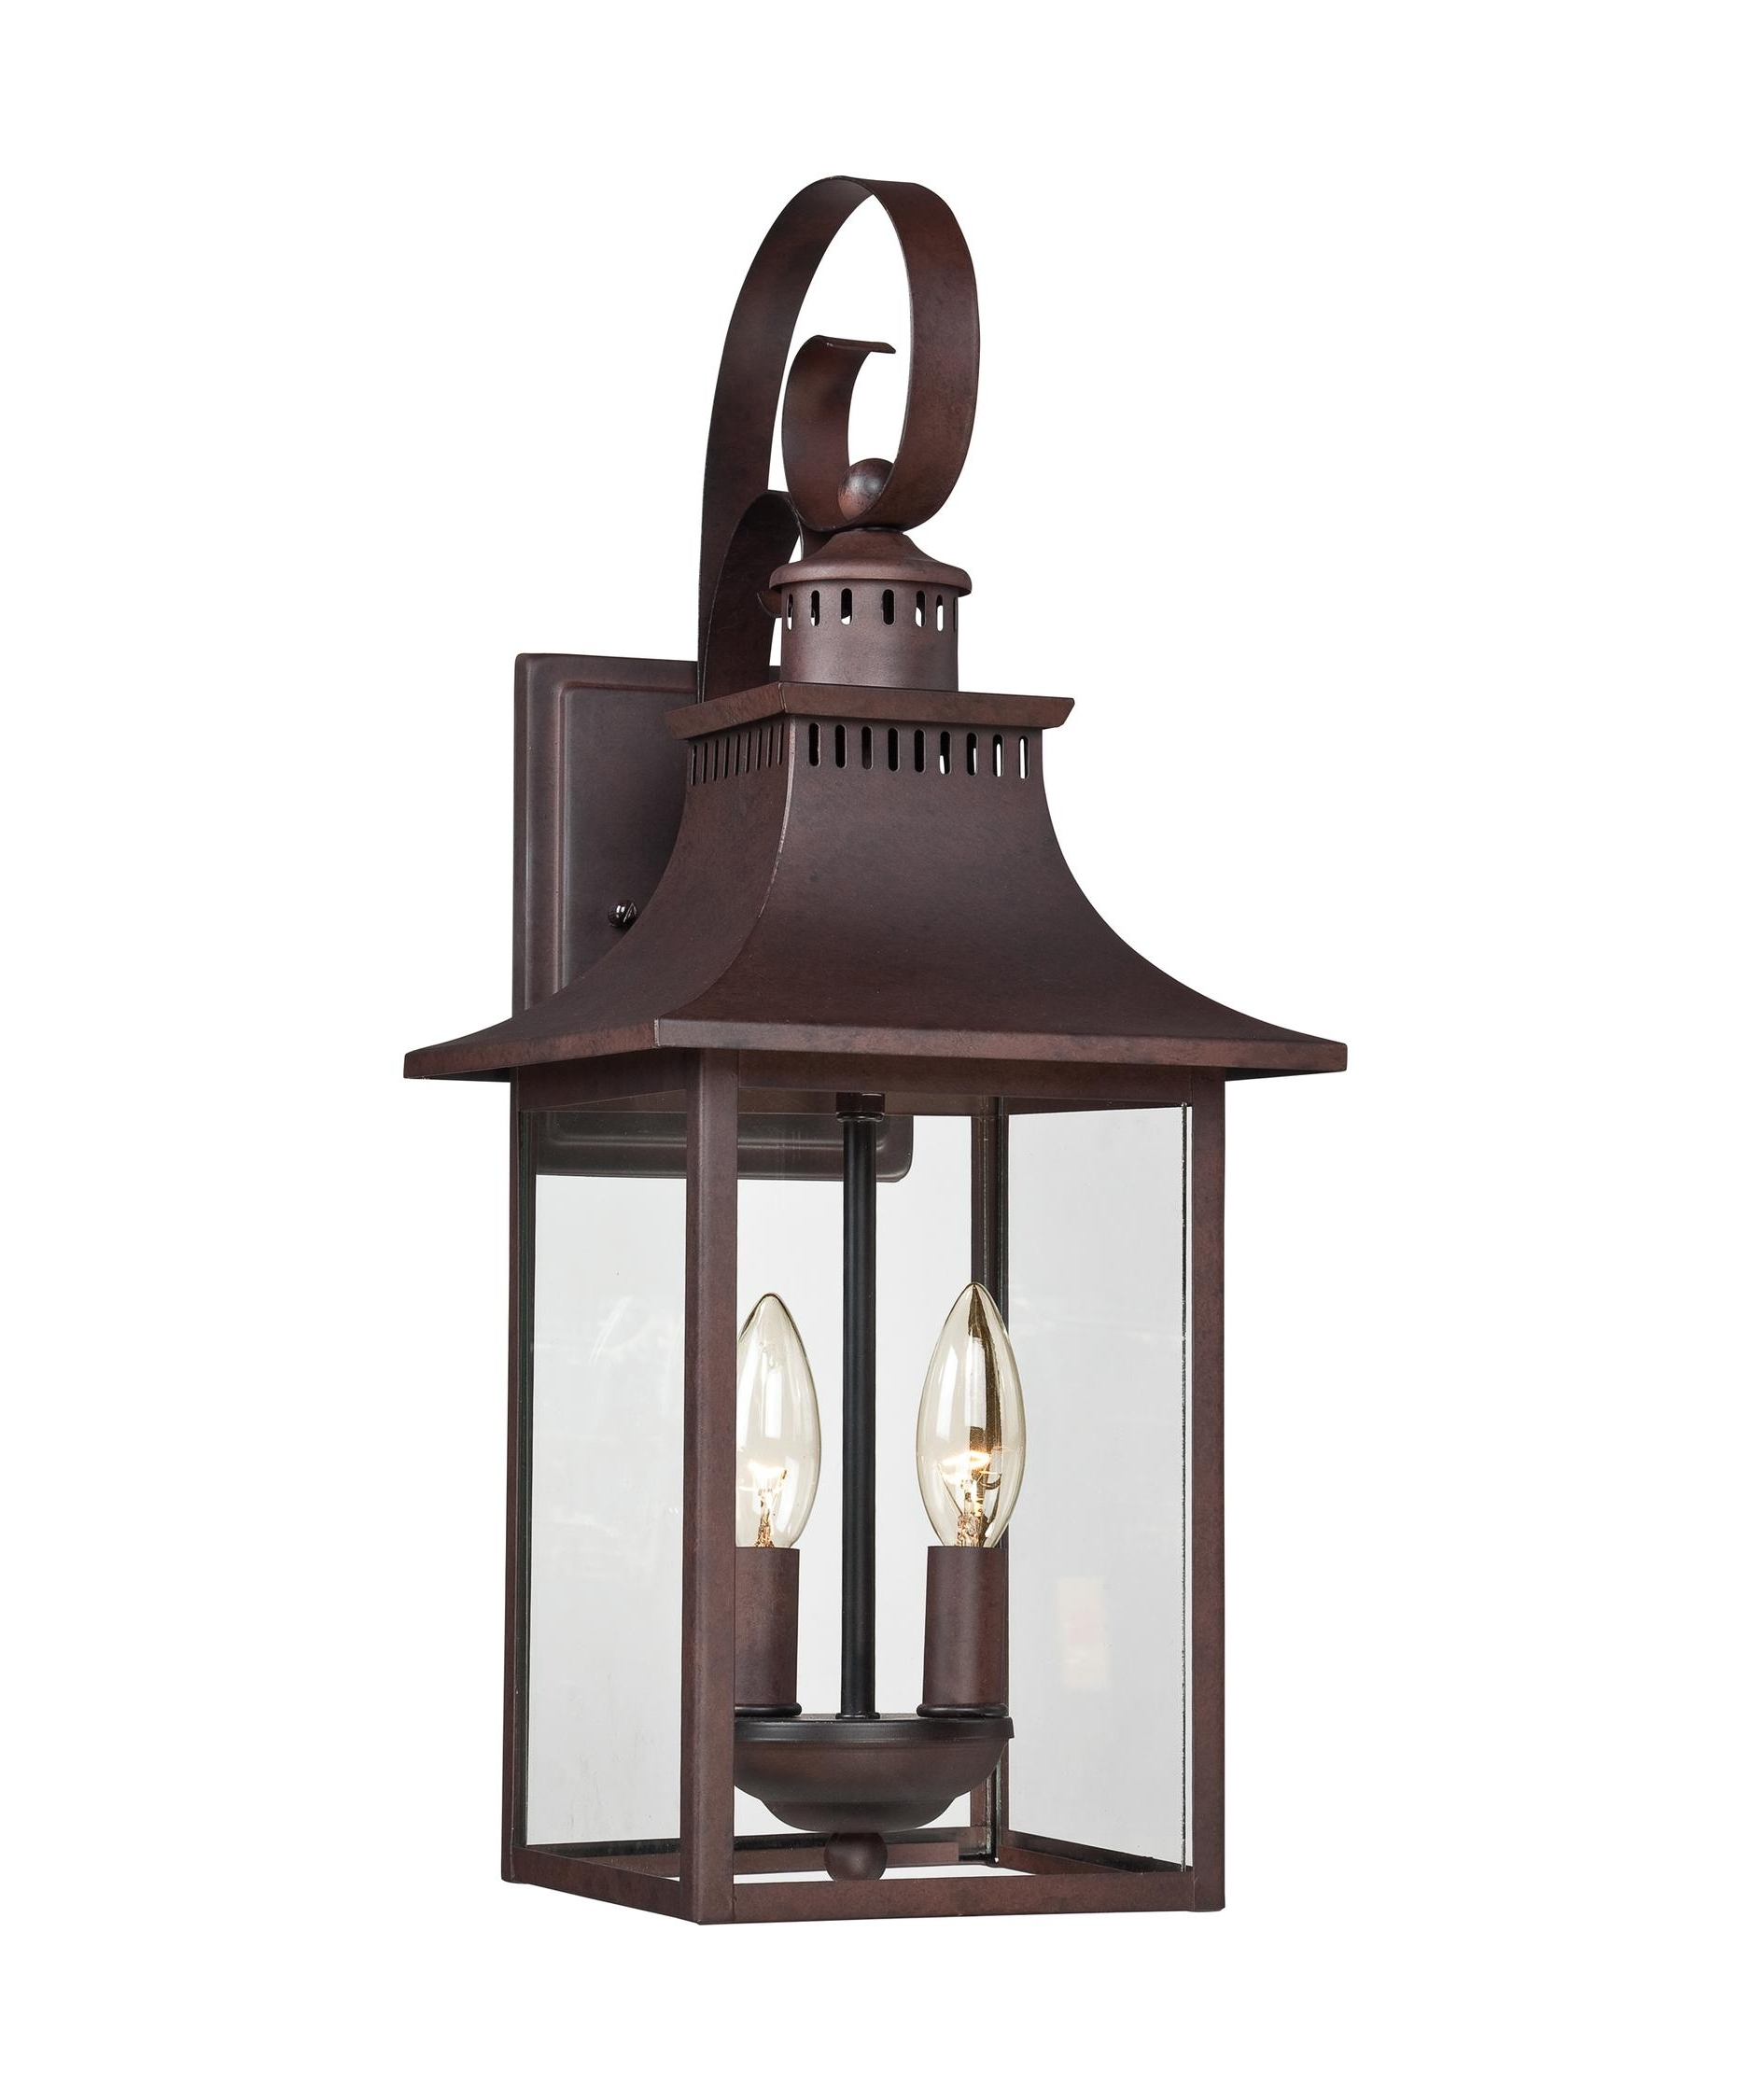 Popular Quoizel Outdoor Lanterns Within Quoizel Ccr8408 Chancellor 8 Inch Wide 2 Light Outdoor Wall Light (View 9 of 20)